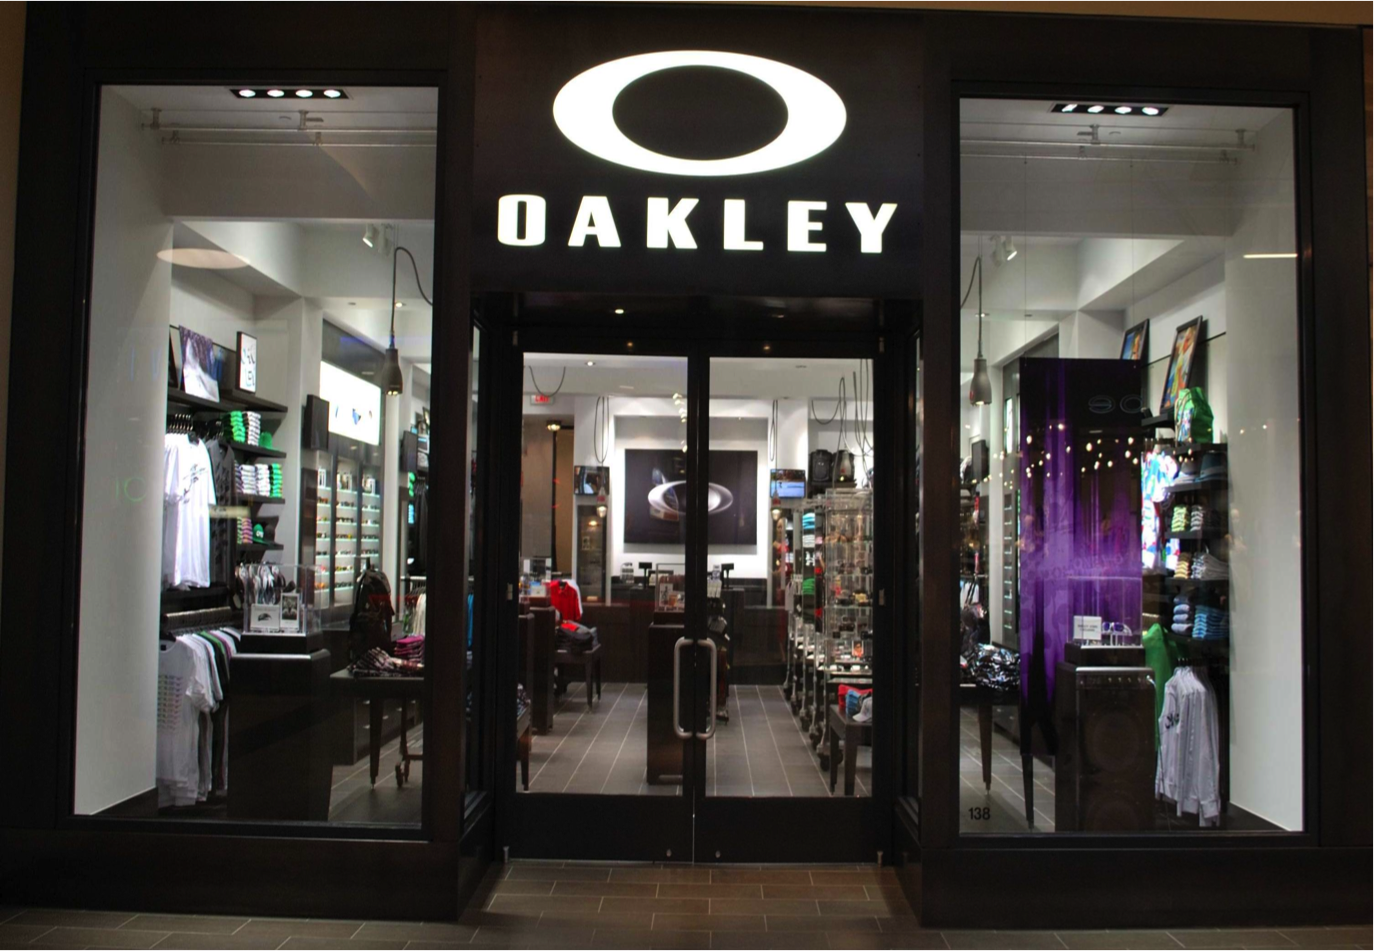 oakley store in newark de 302 731 1. Black Bedroom Furniture Sets. Home Design Ideas